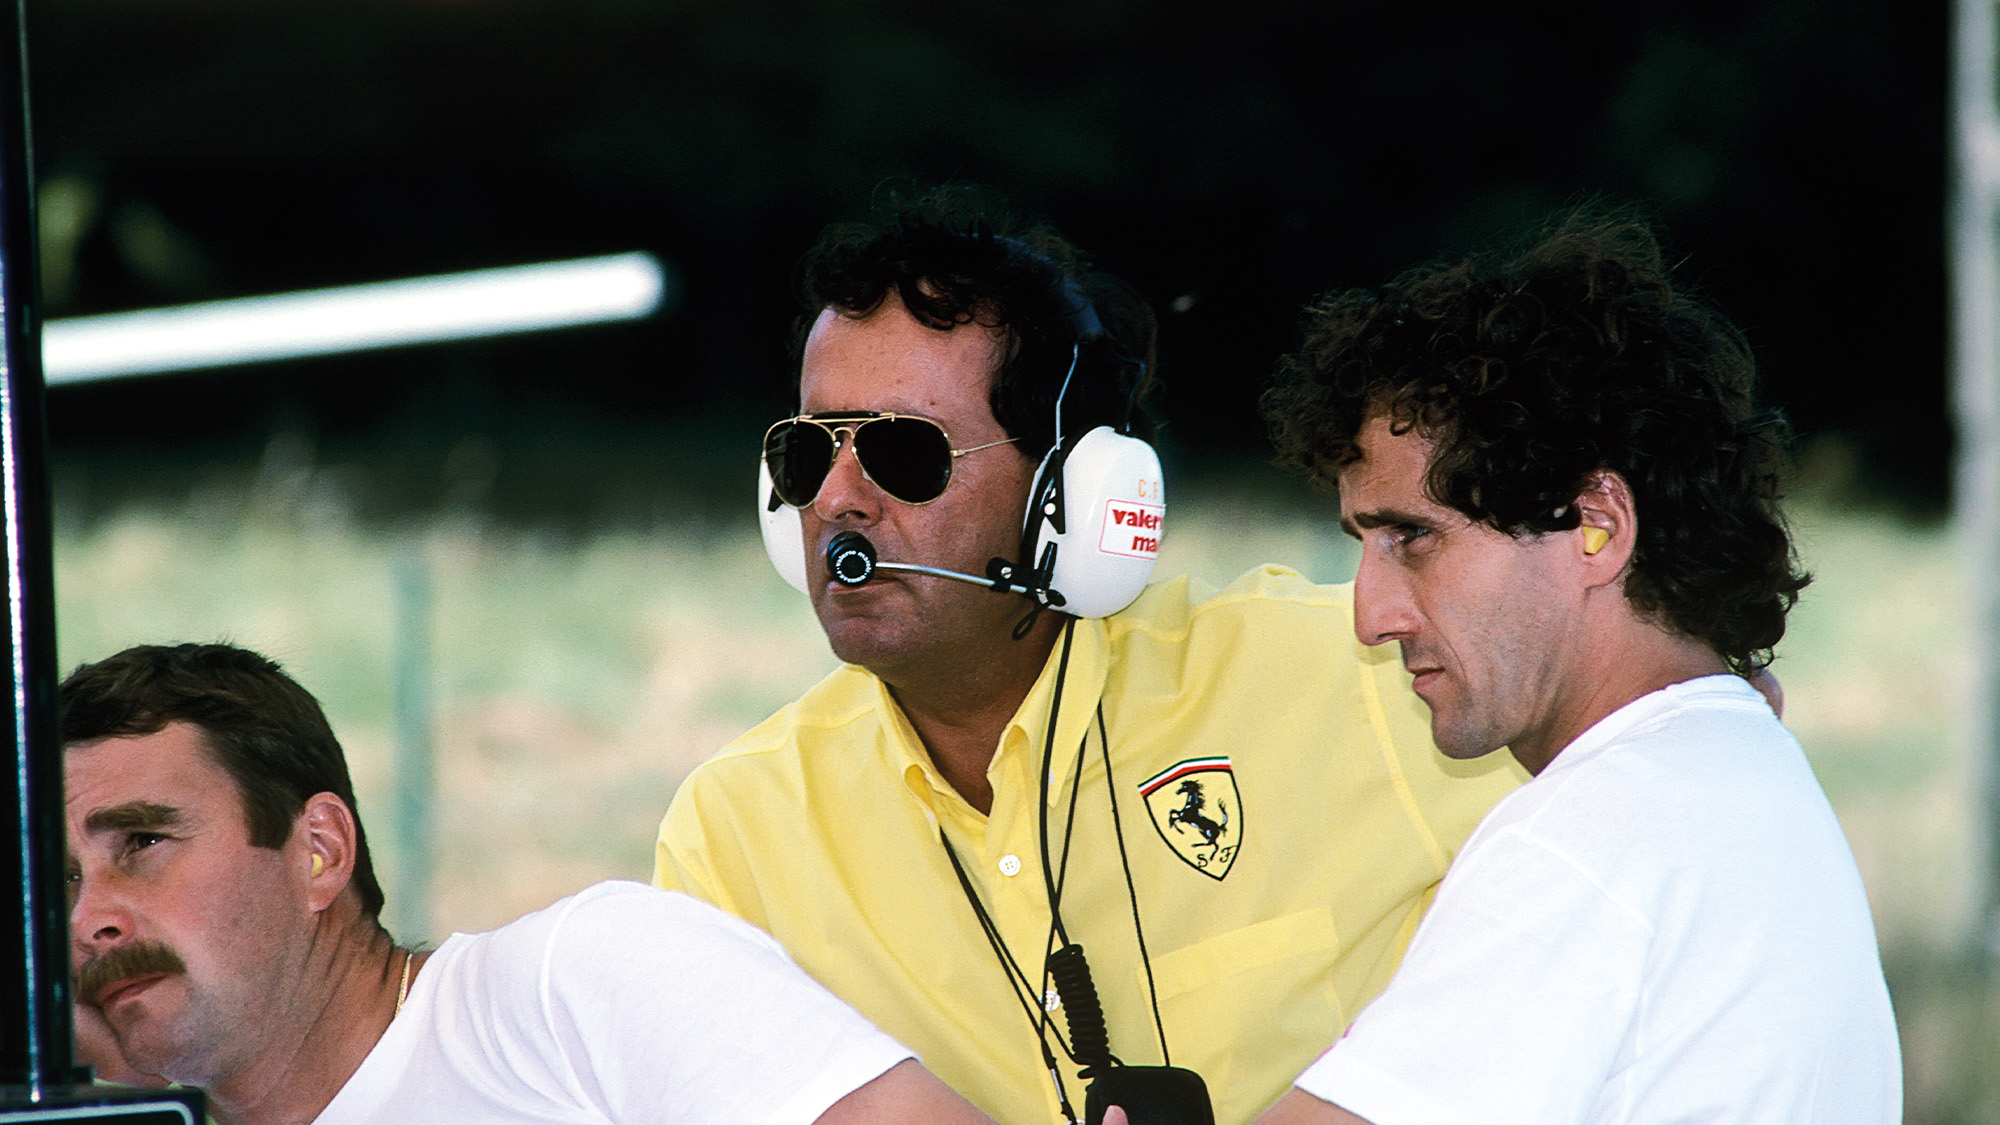 Ferrari team manager Cesare Fiorio with Nigel Mansell and Alain Prost